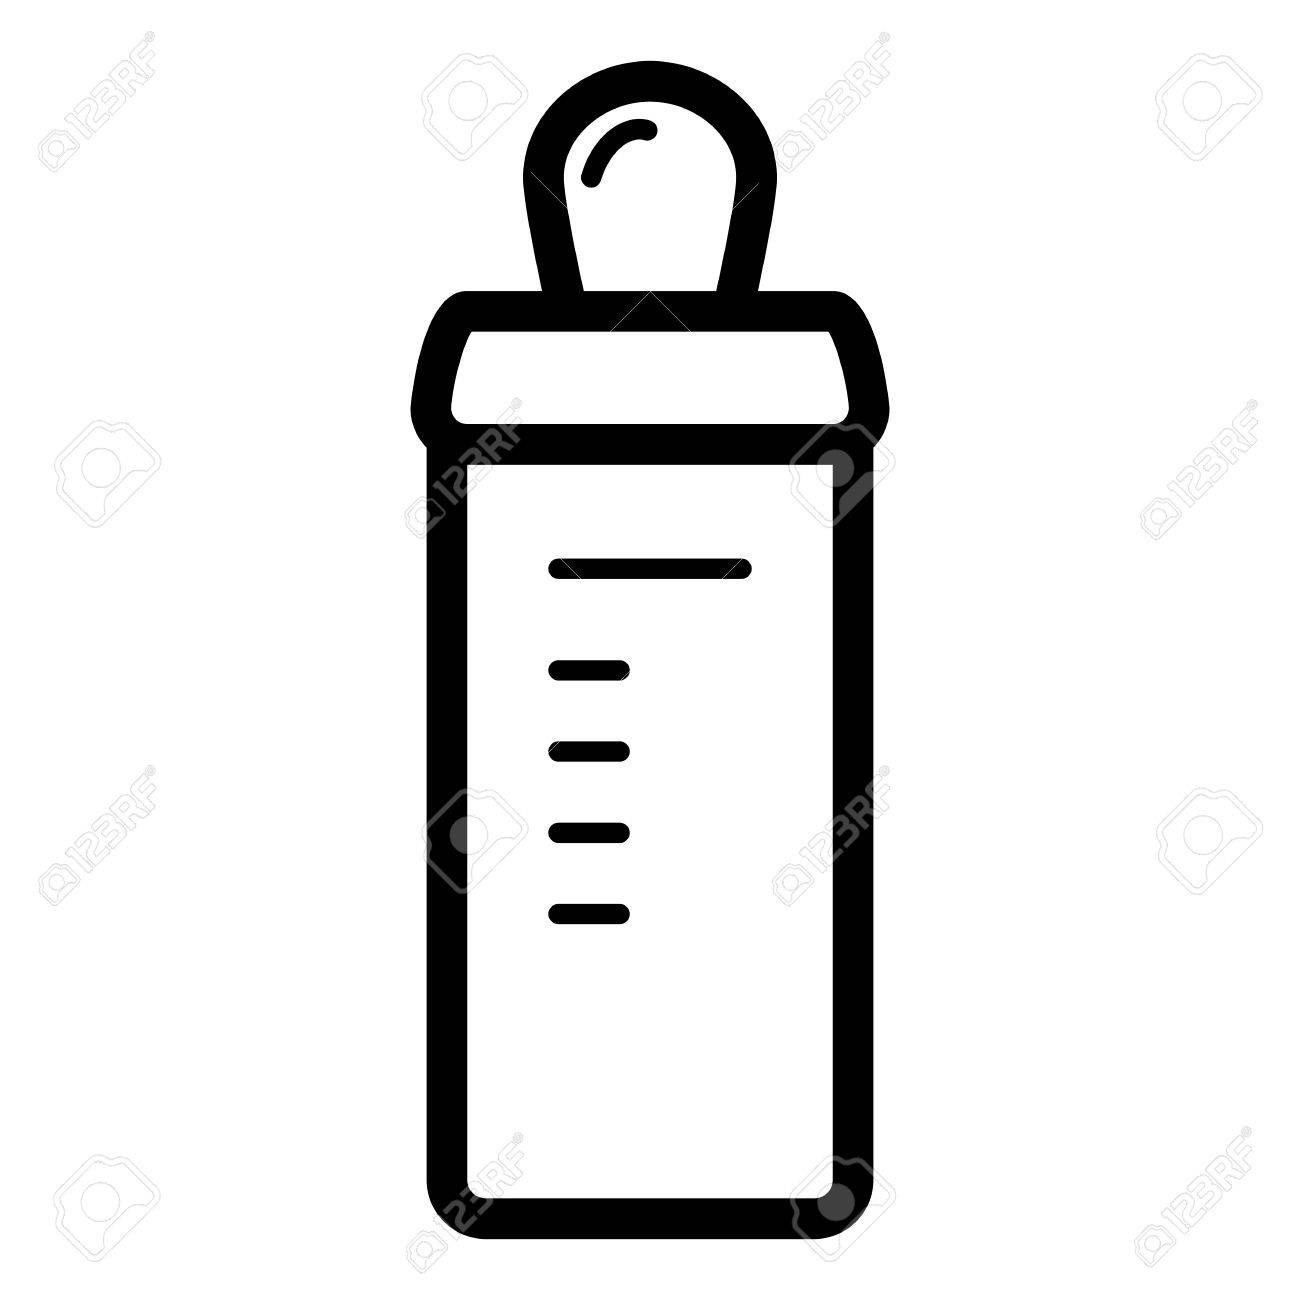 baby bottle vector icon black and white baby nipple illustration rh 123rf com baby bottle vector free download baby bottle vector image